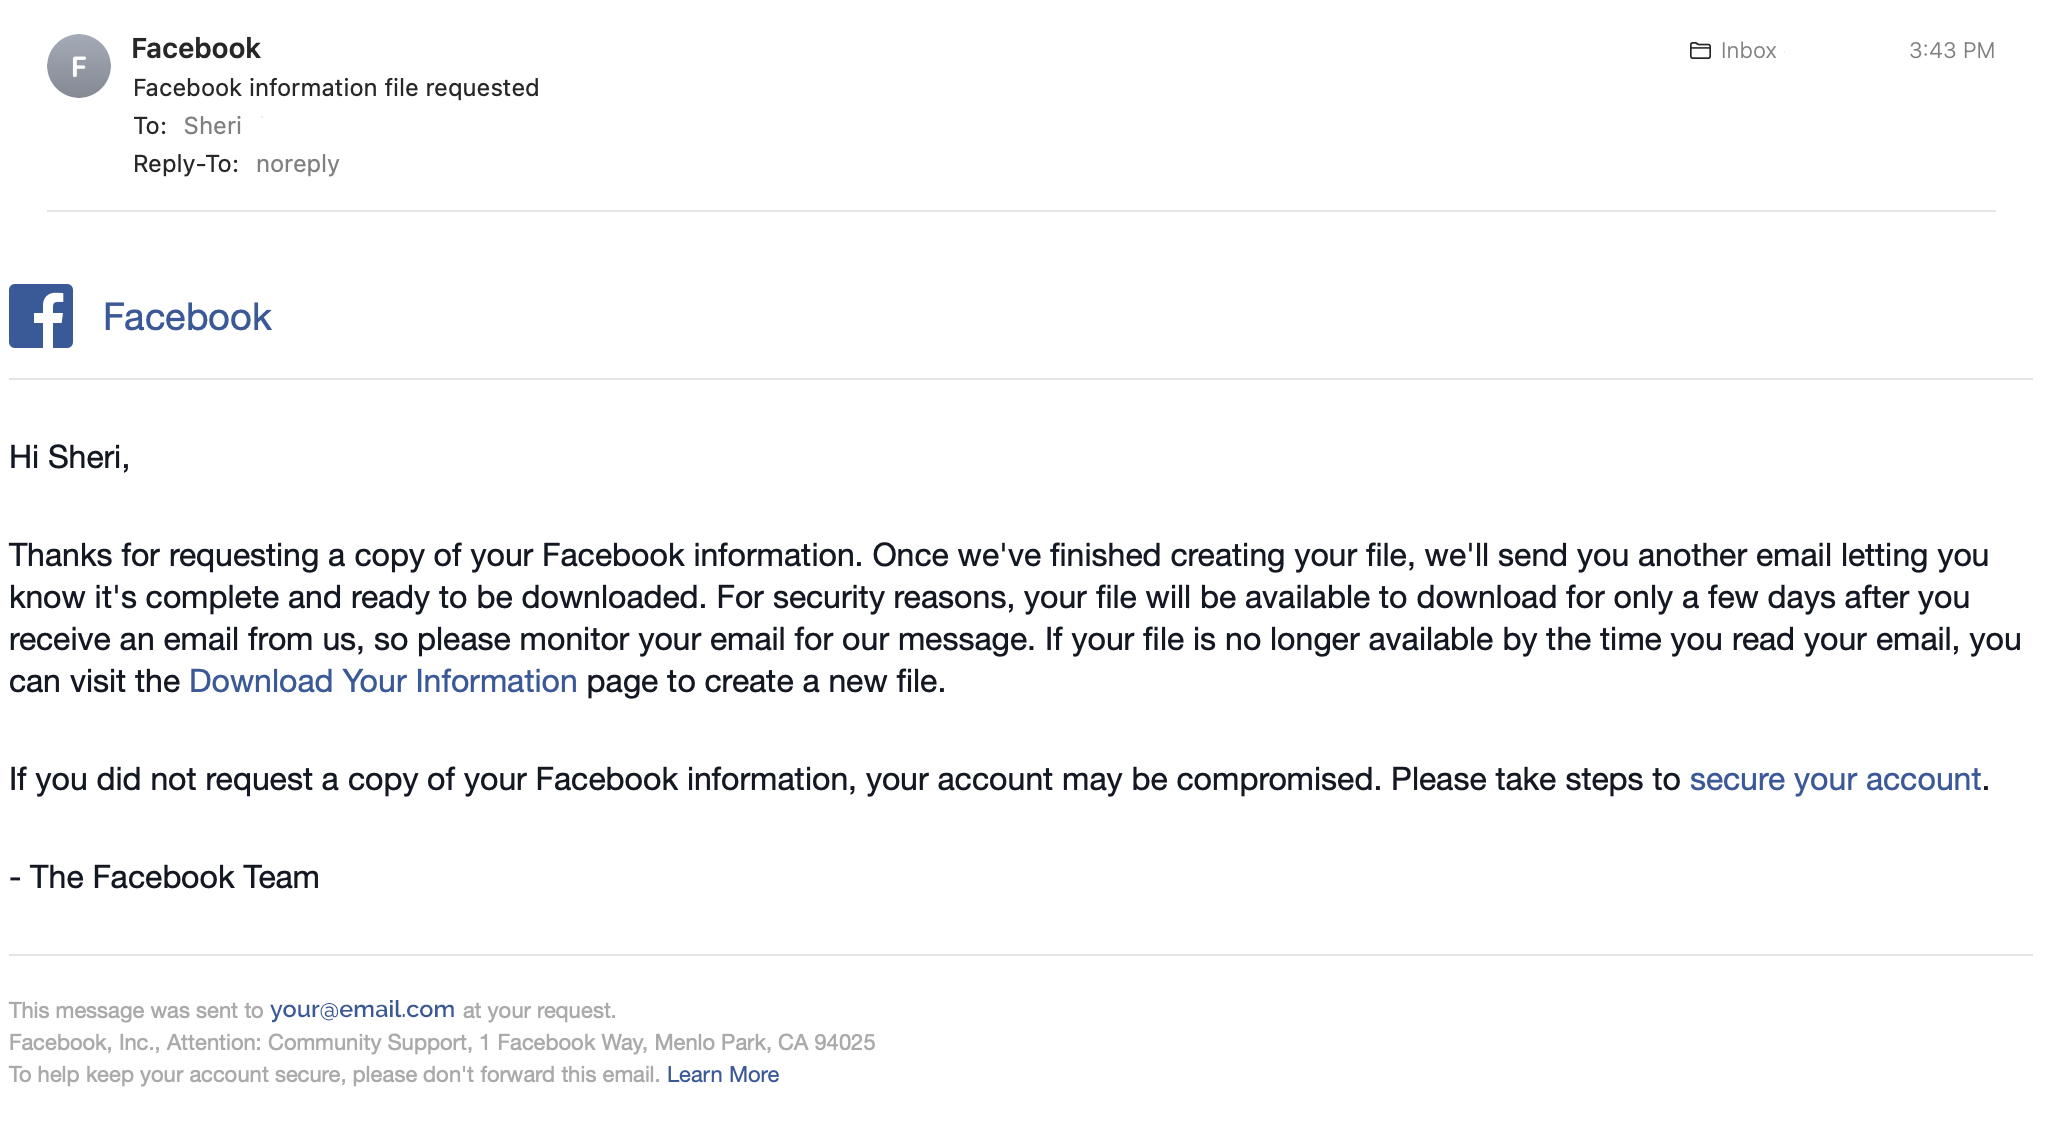 Facebook email download request acknowledgement